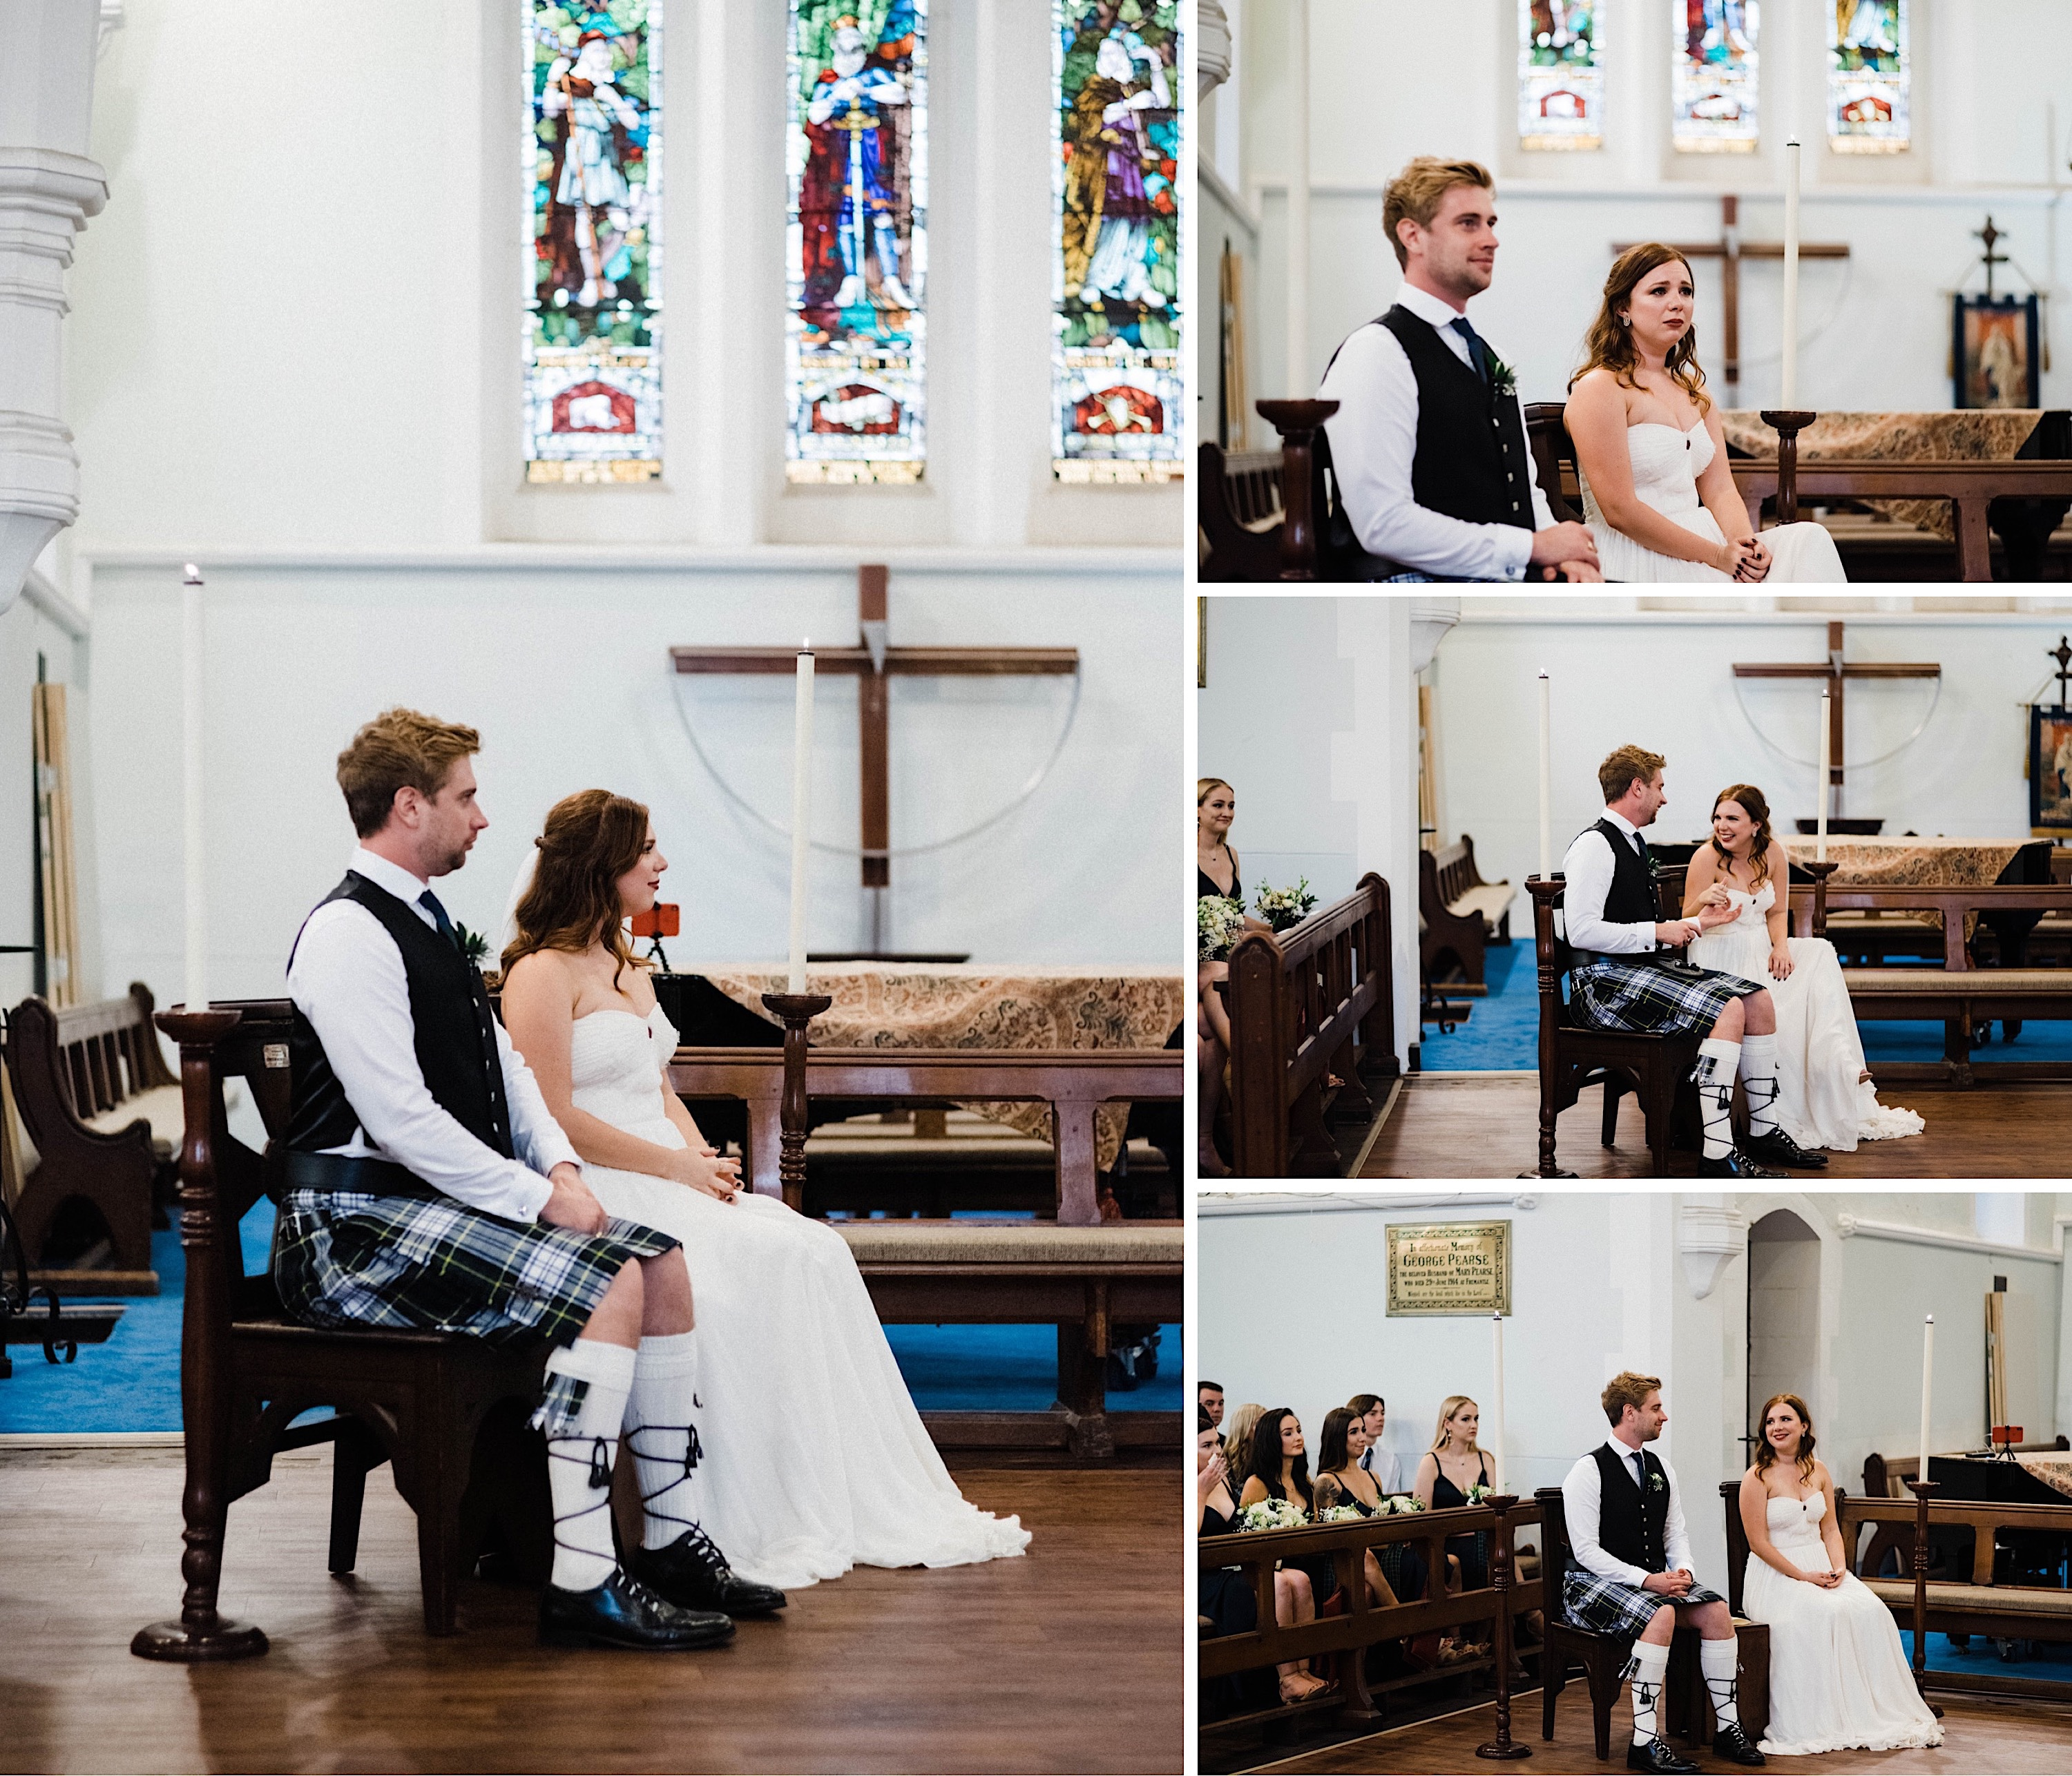 Four documentary wedding photos of the bride & groom sitting together at the front of the wedding ceremony at St John's Anglican Church.